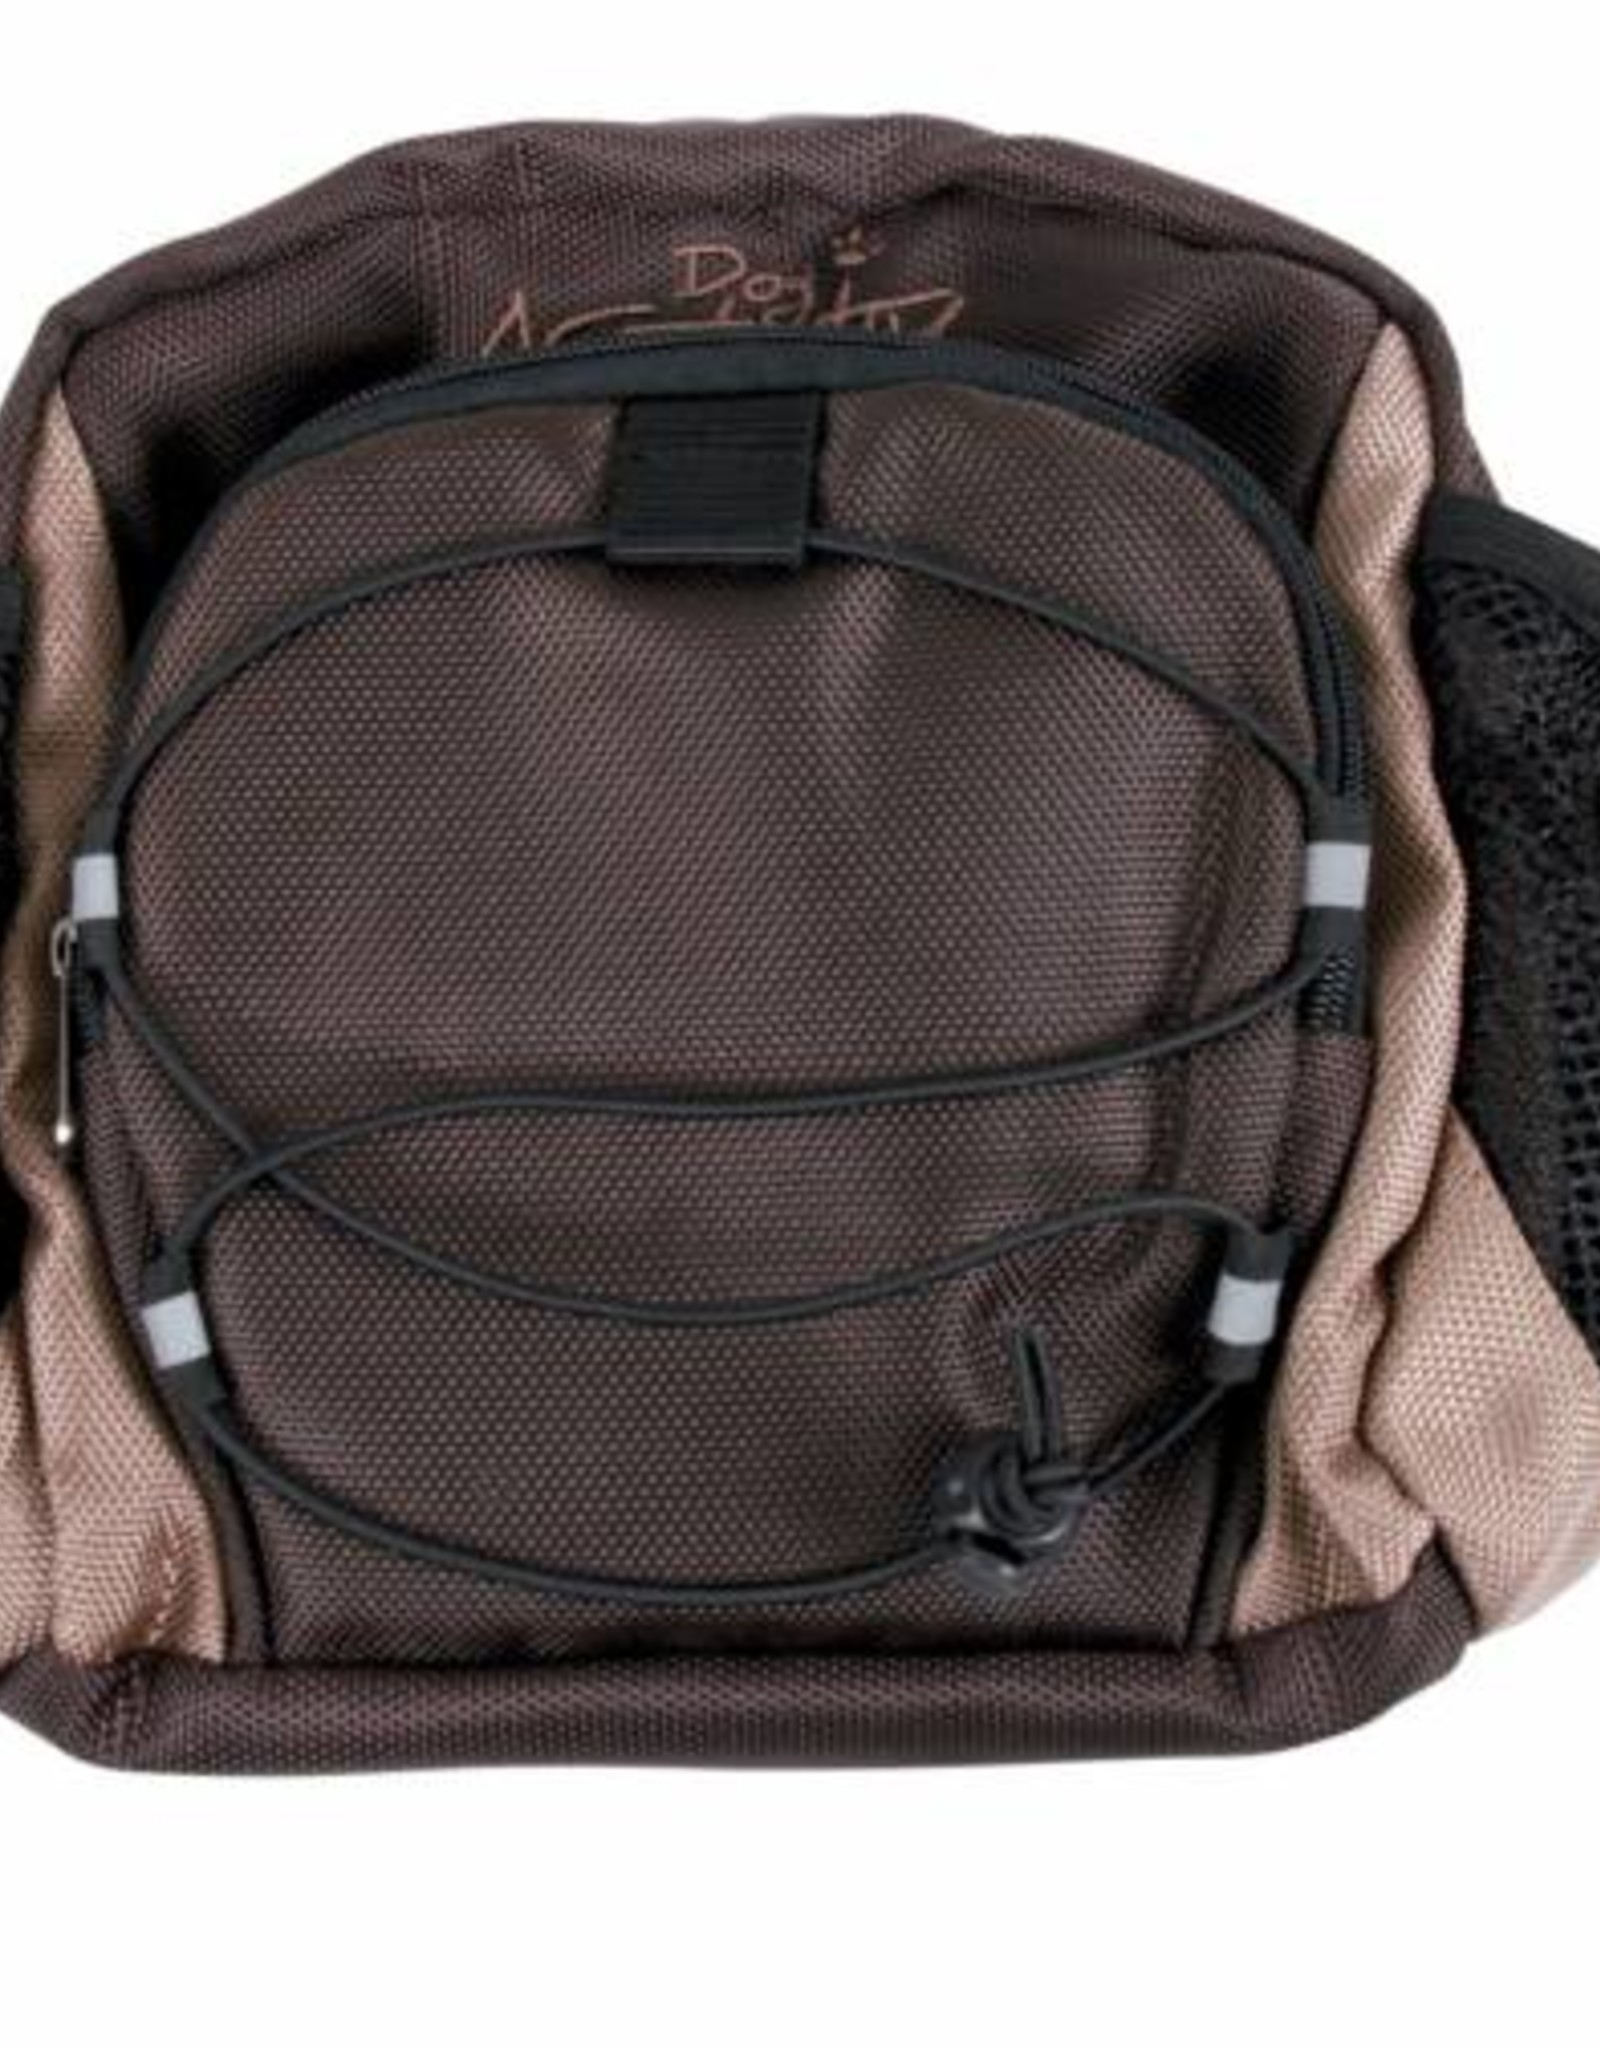 Trixie Dog Activity Multi Belt Hip Bag, Brown & Black, 57-138cm